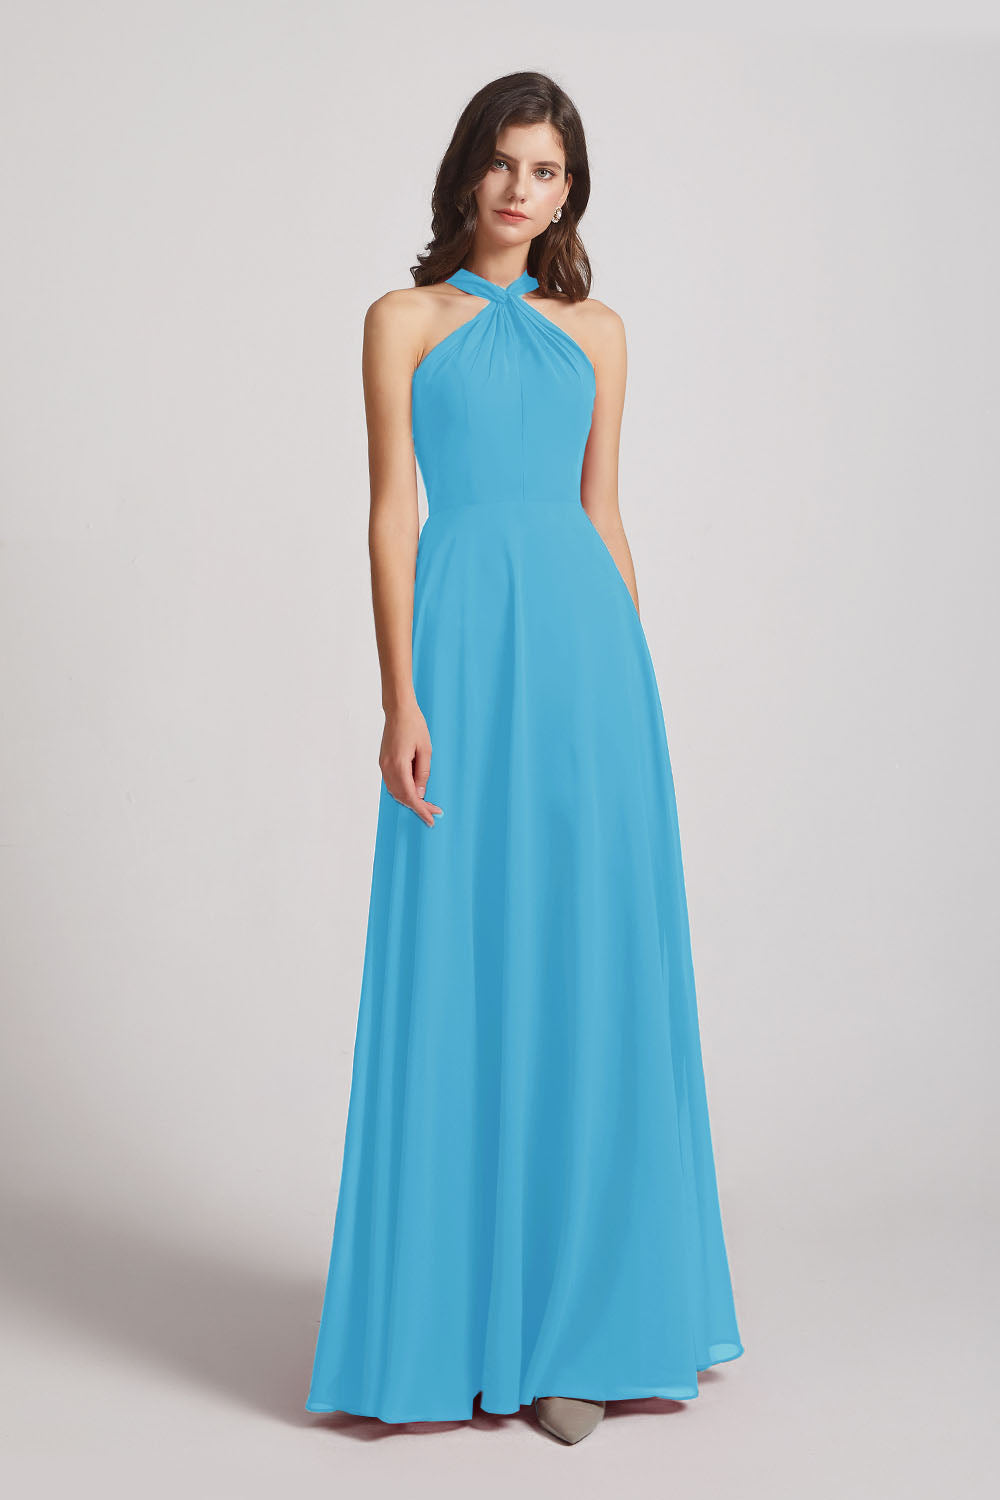 Alfa Bridal Ice Blue Floor Length Chiffon Bridesmaid Dresses with Criss Cross Neckline (AF0113)